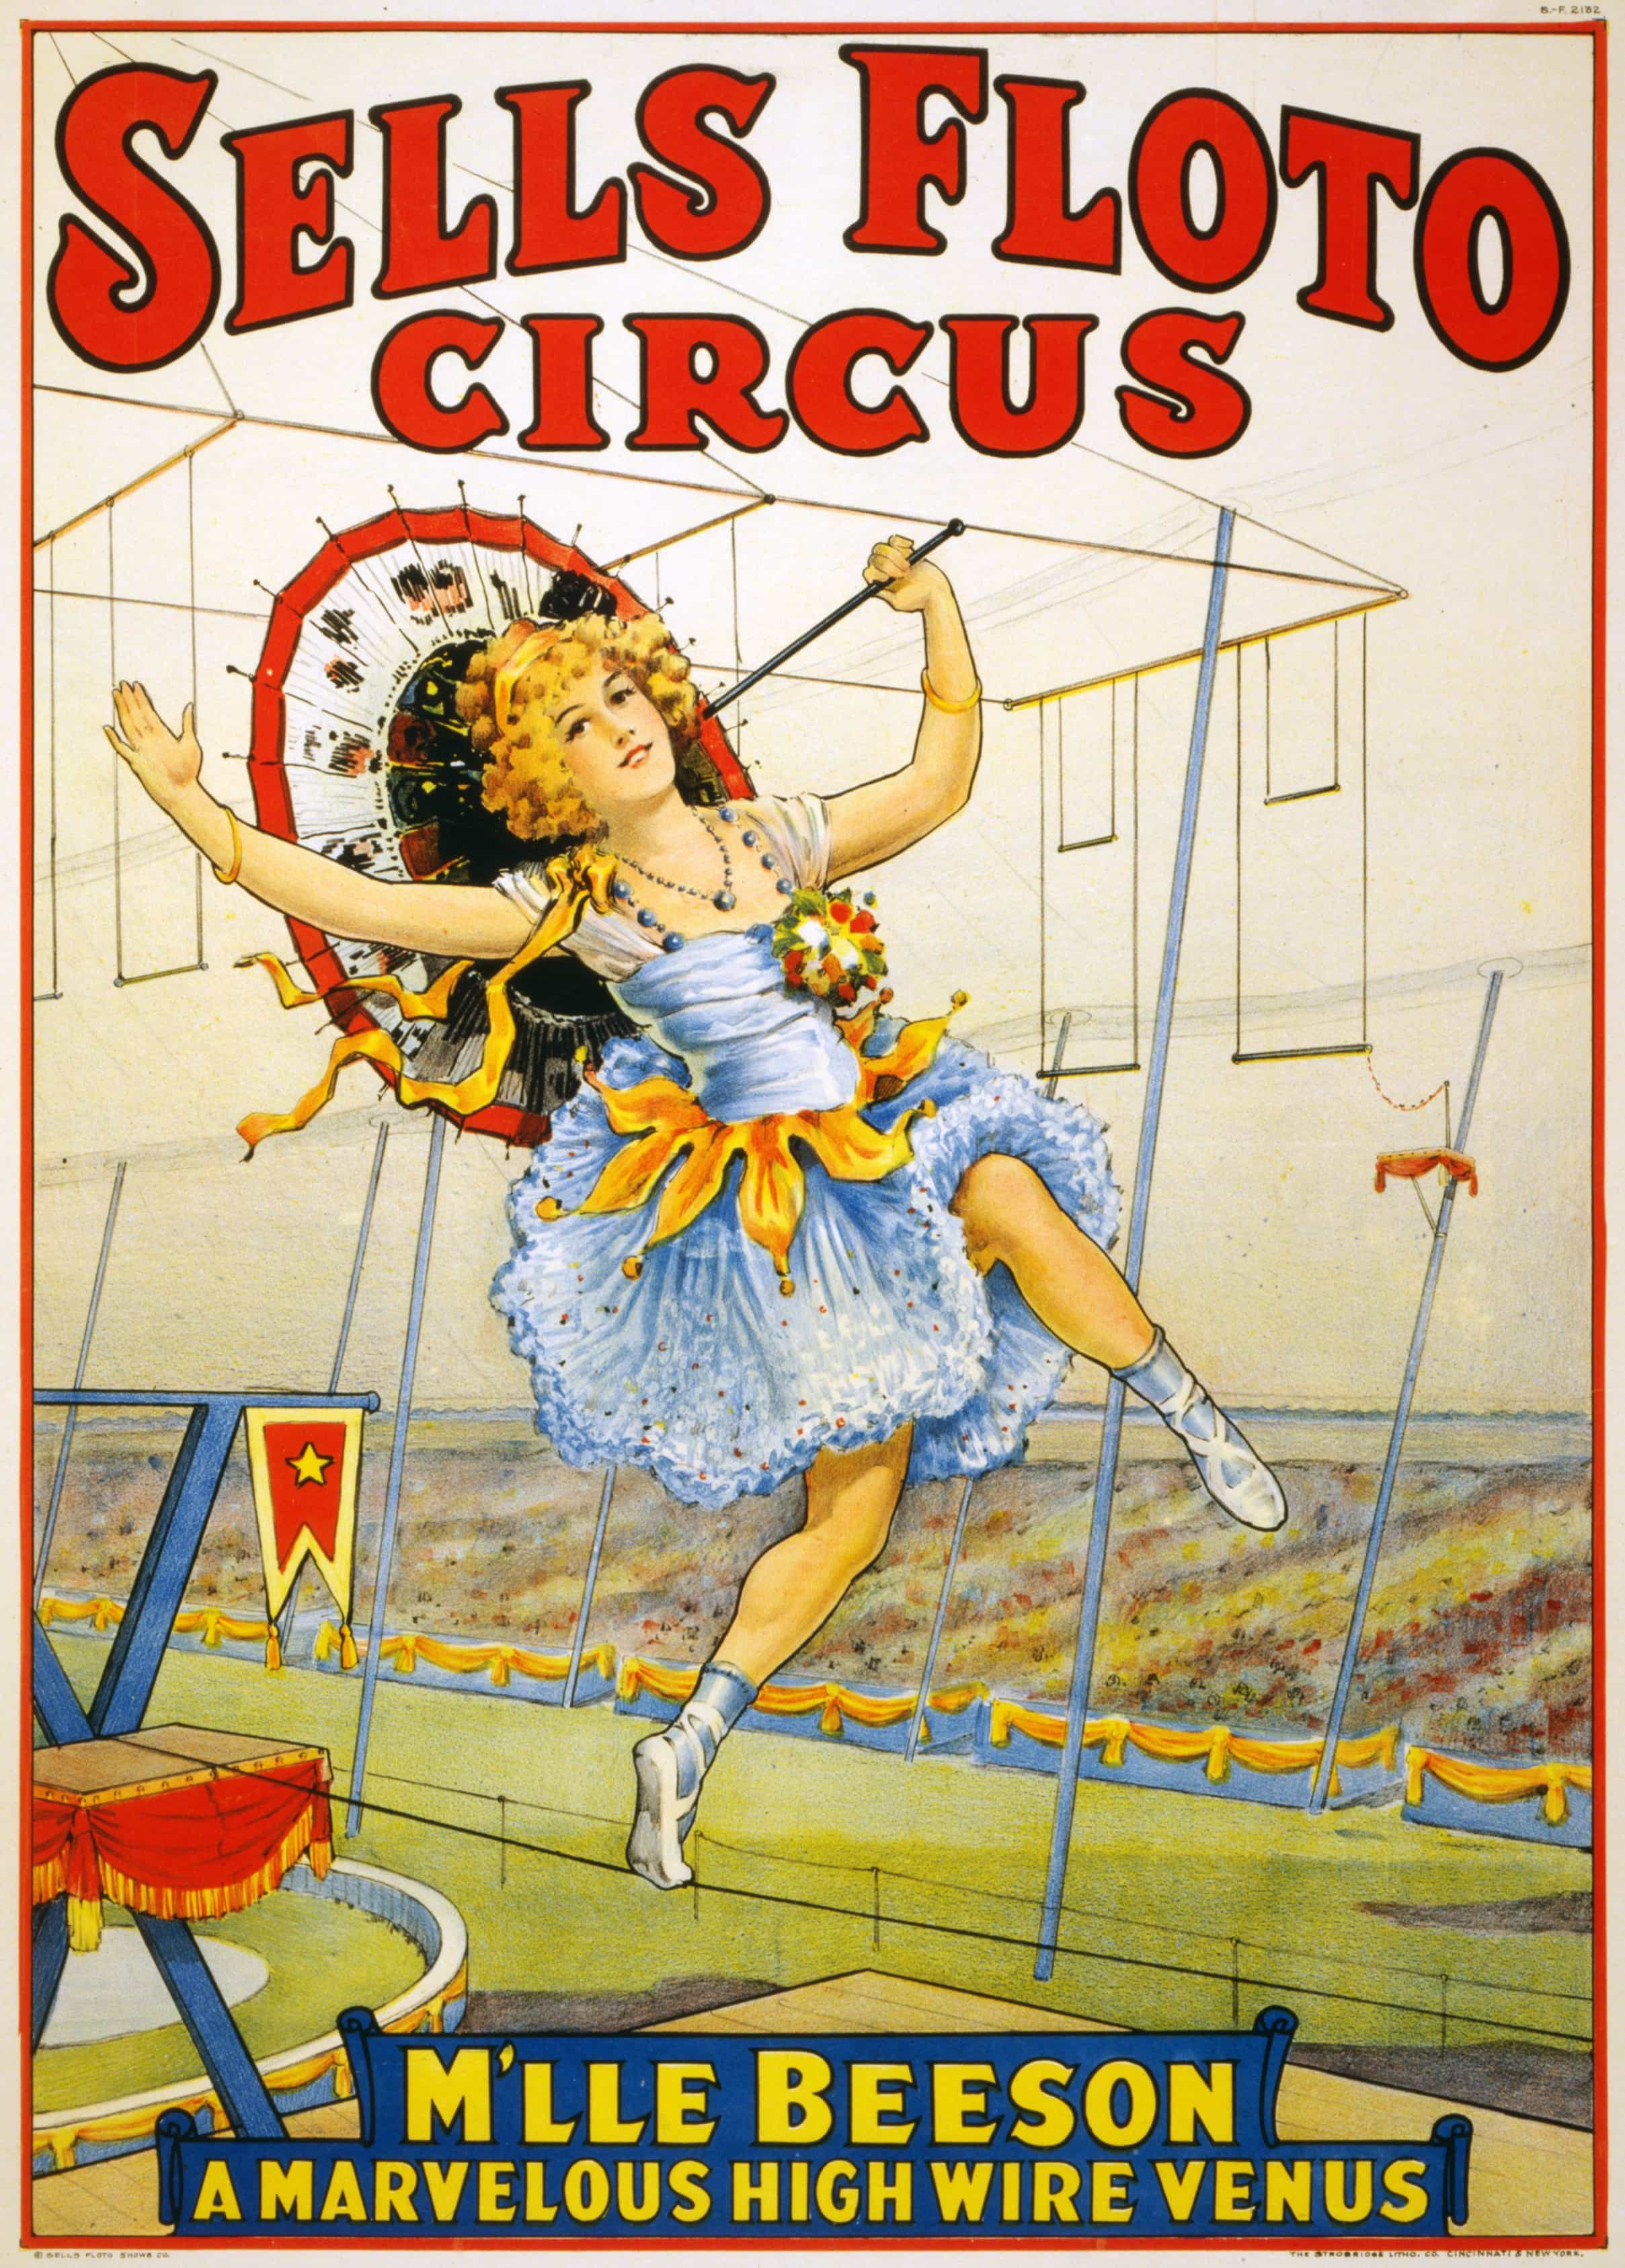 Vintage Circus Poster – Sells Floto Circus – M'lle Beeson